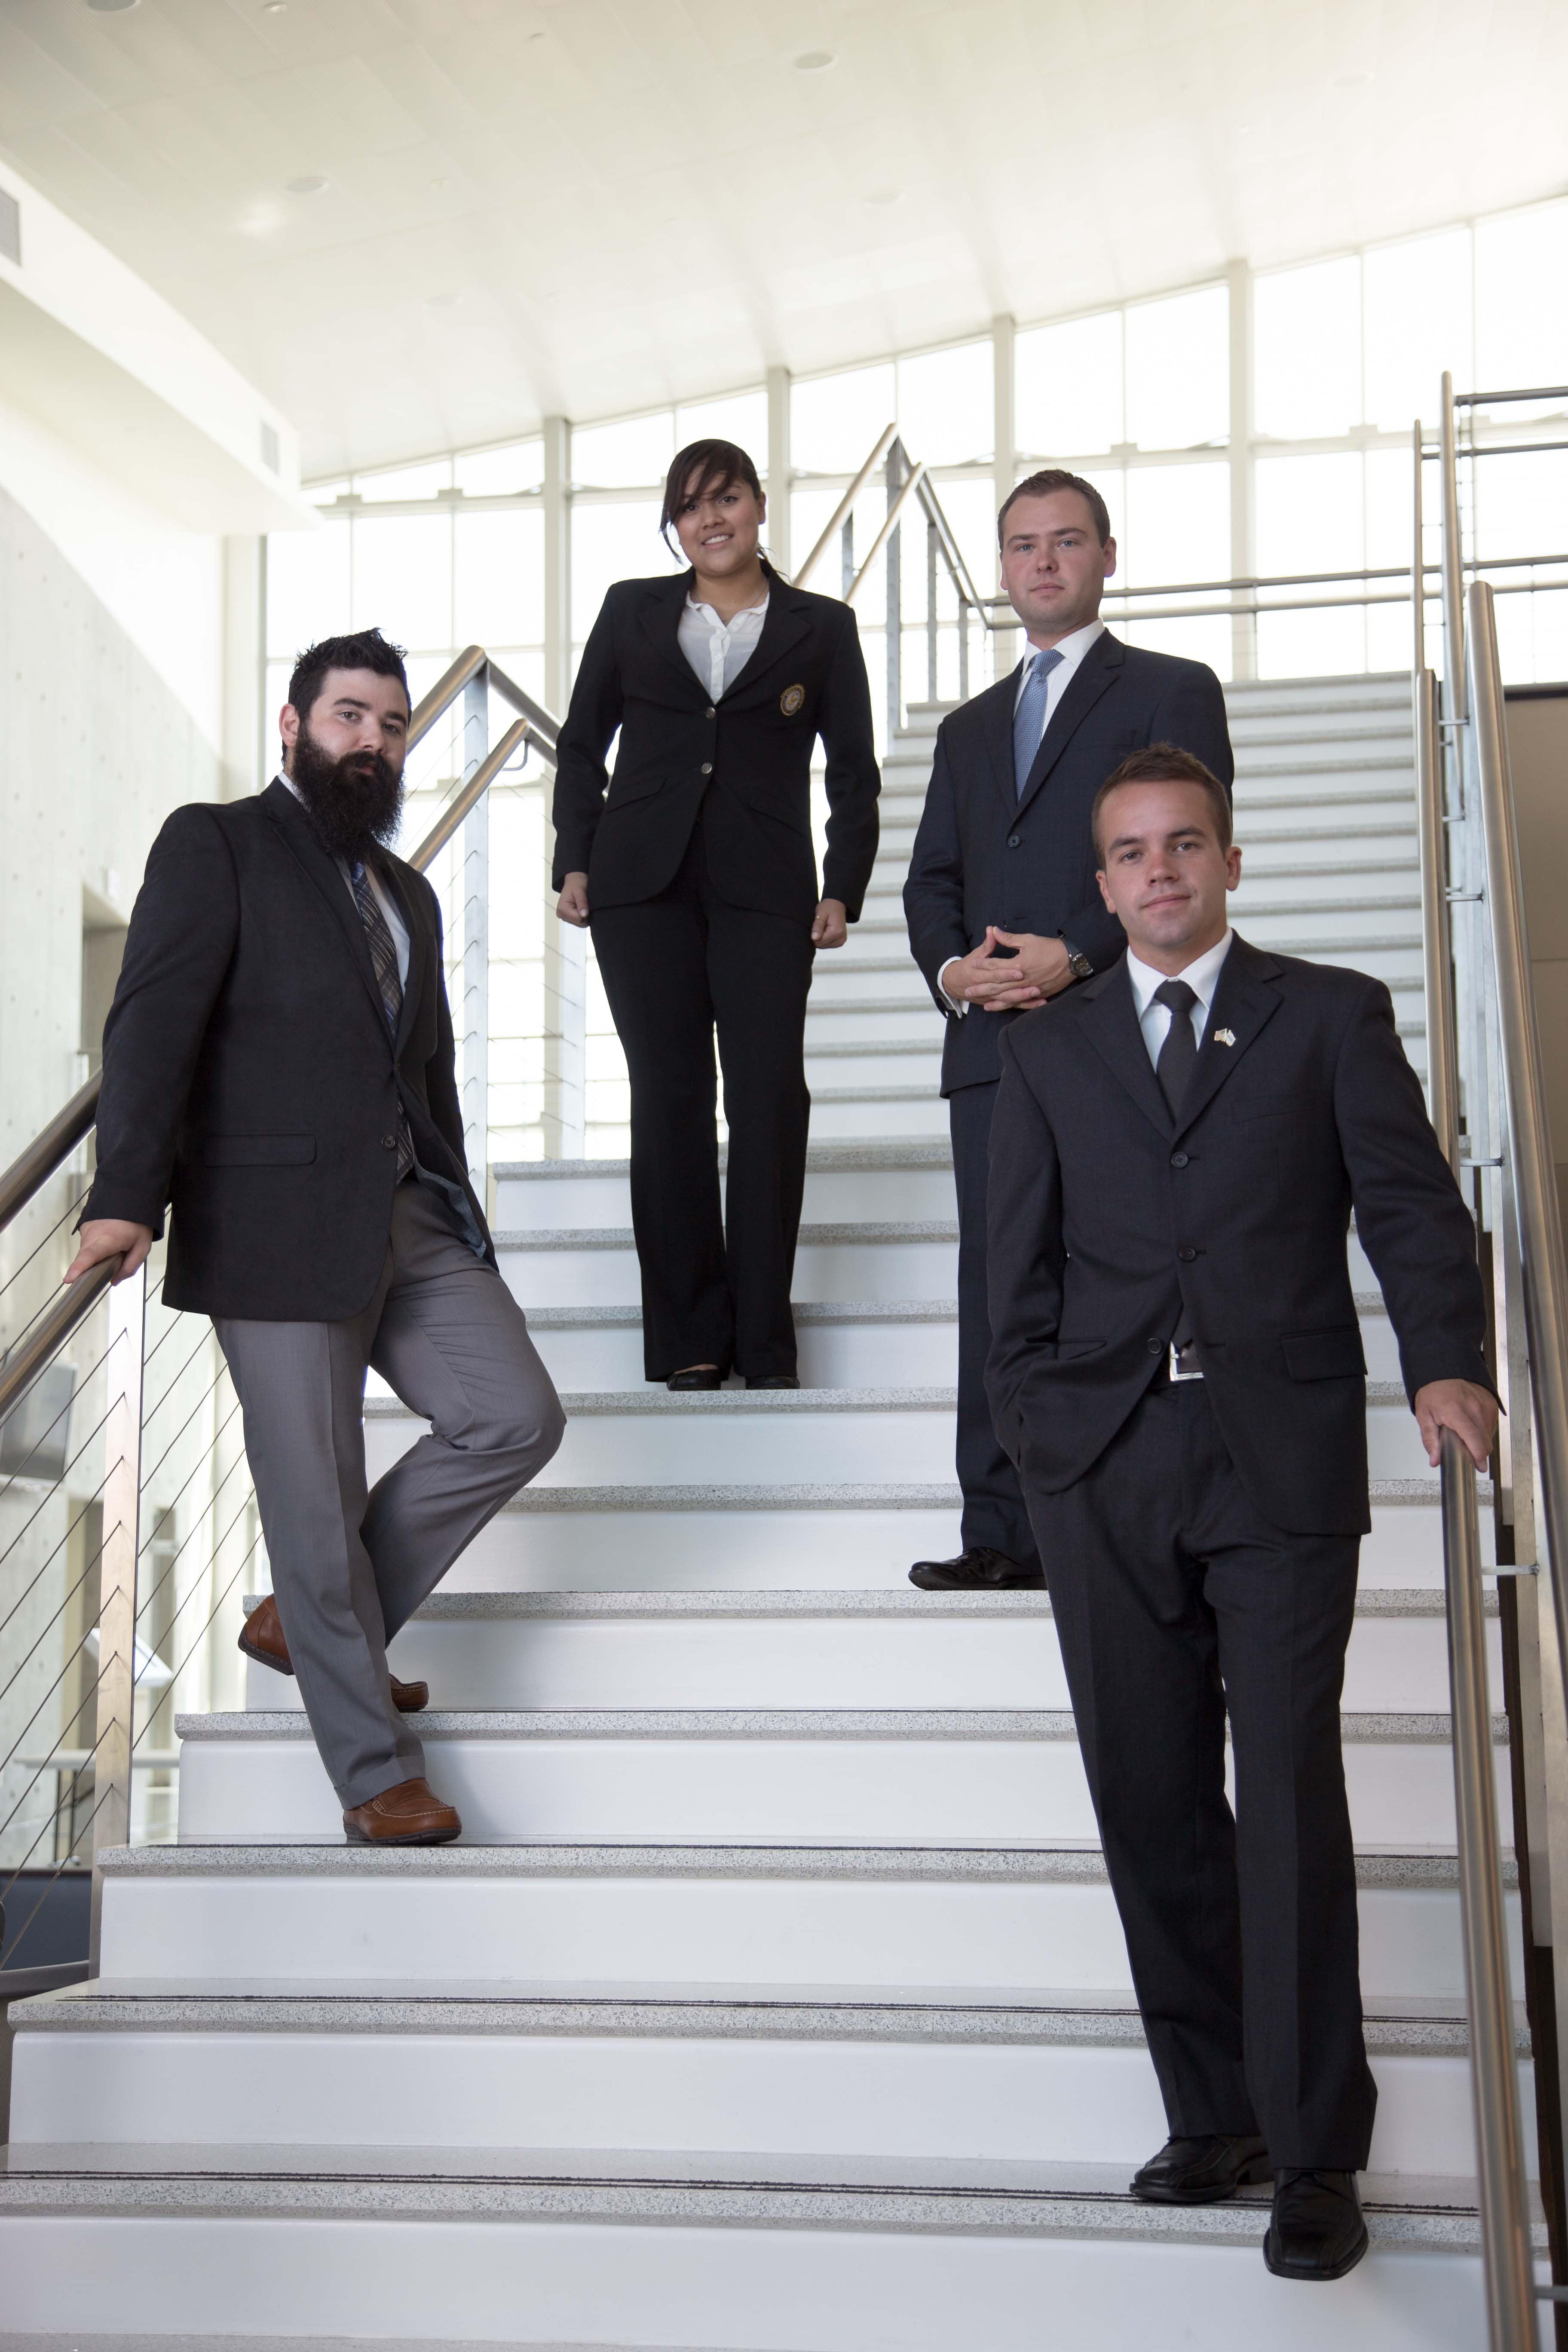 Portrait of three male students and a female student, all dressed in business attire, on stairs